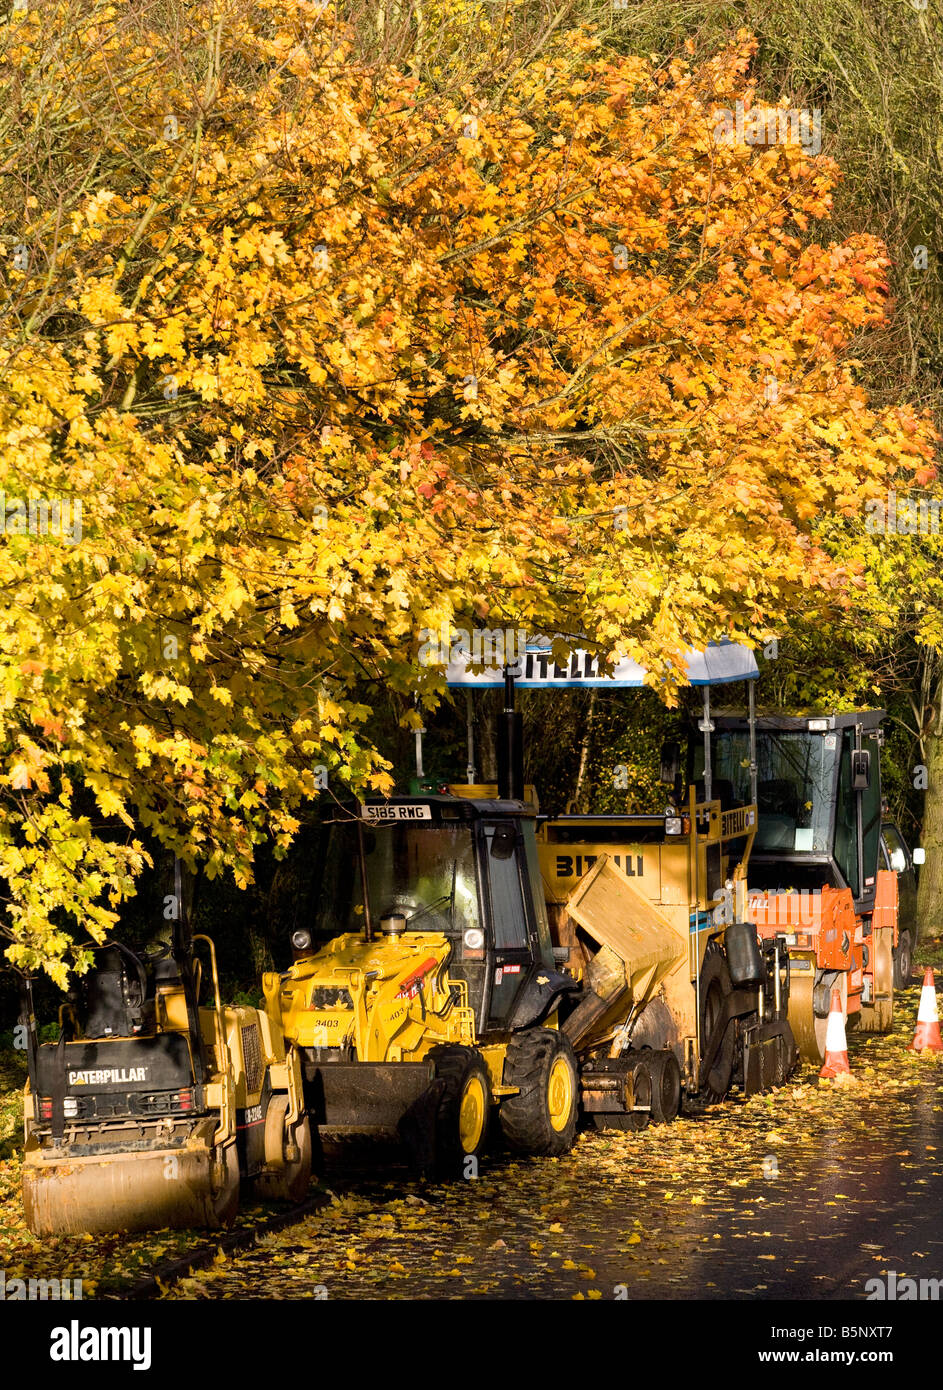 Road construction machinery under trees showing their autumn colors Englnd UK - Stock Image